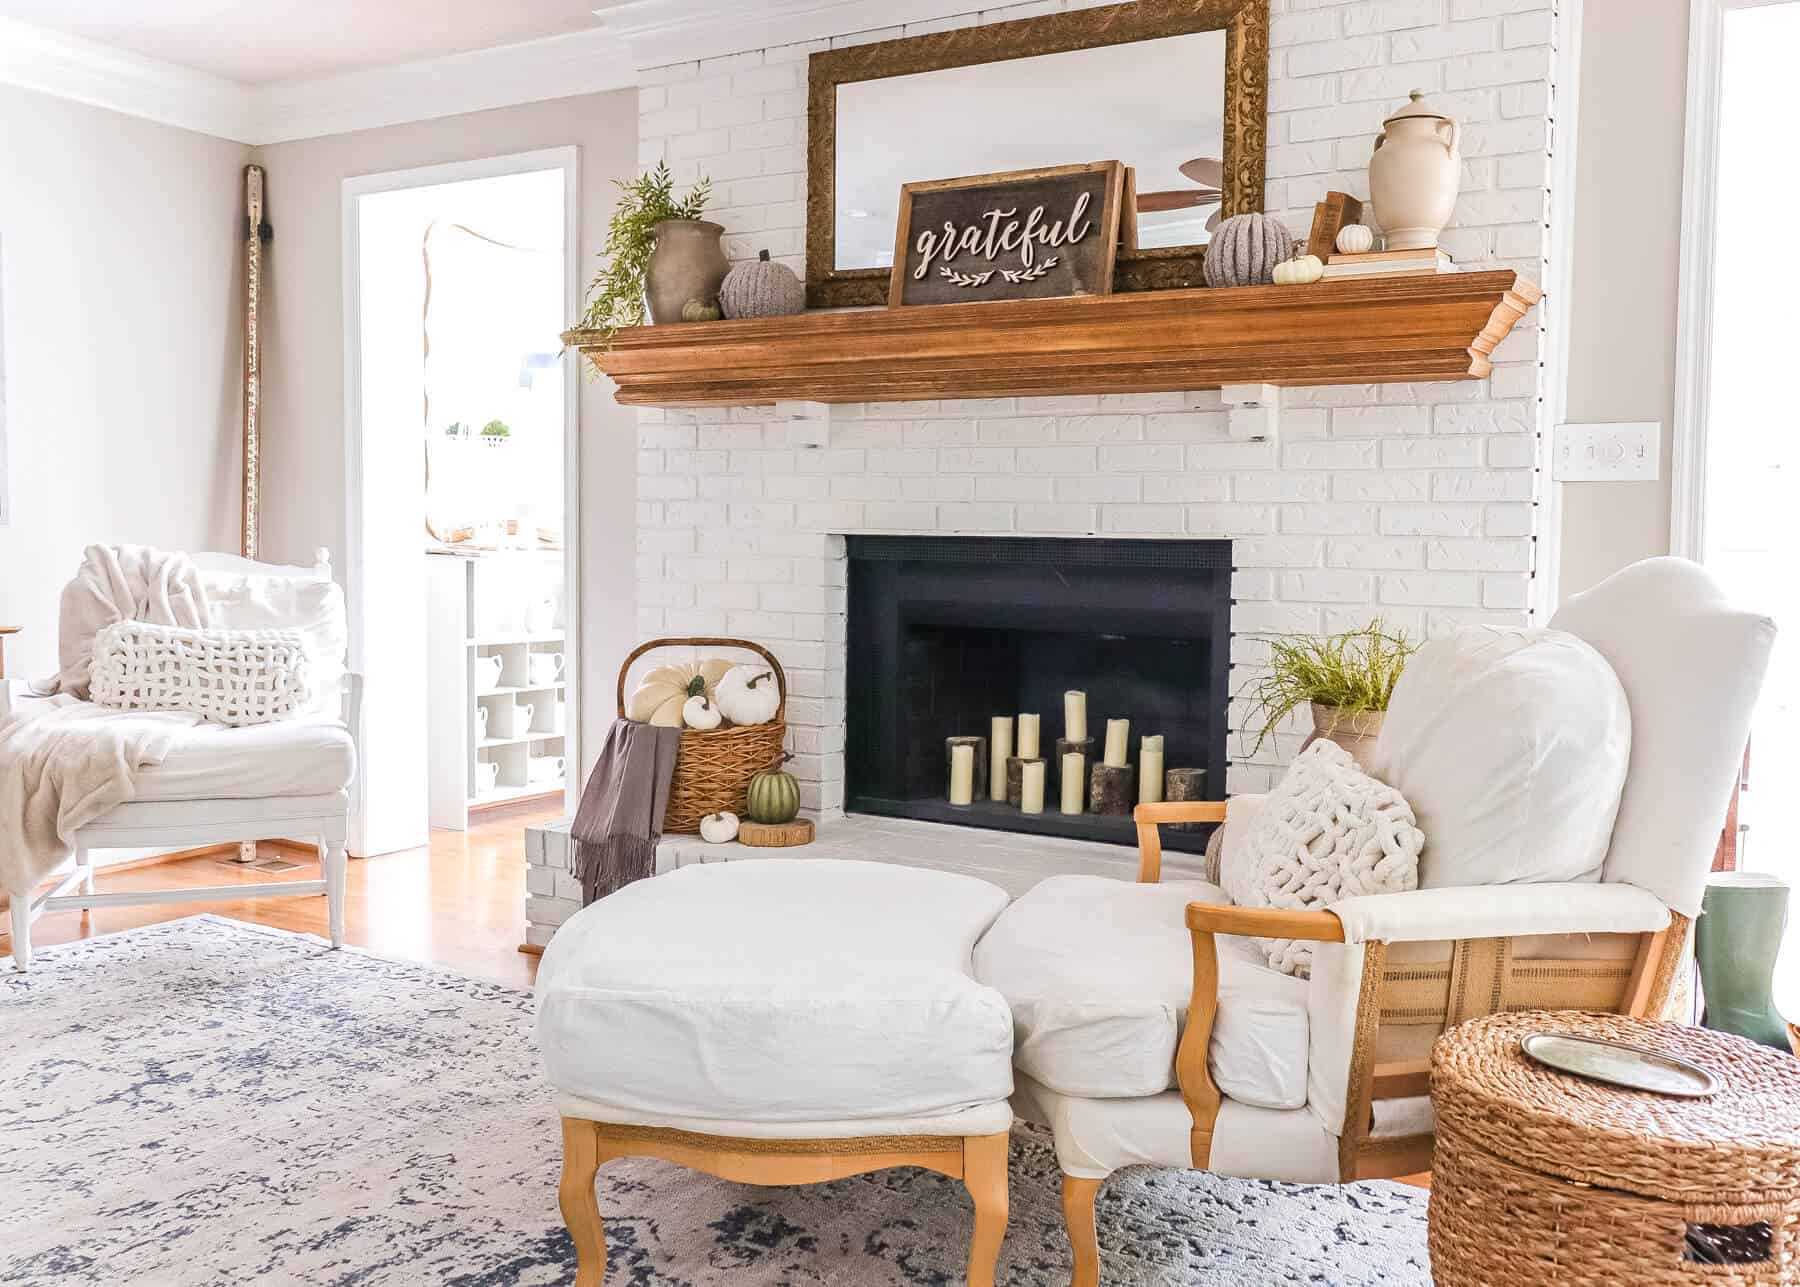 fall mantel decor with candles in the fireplace